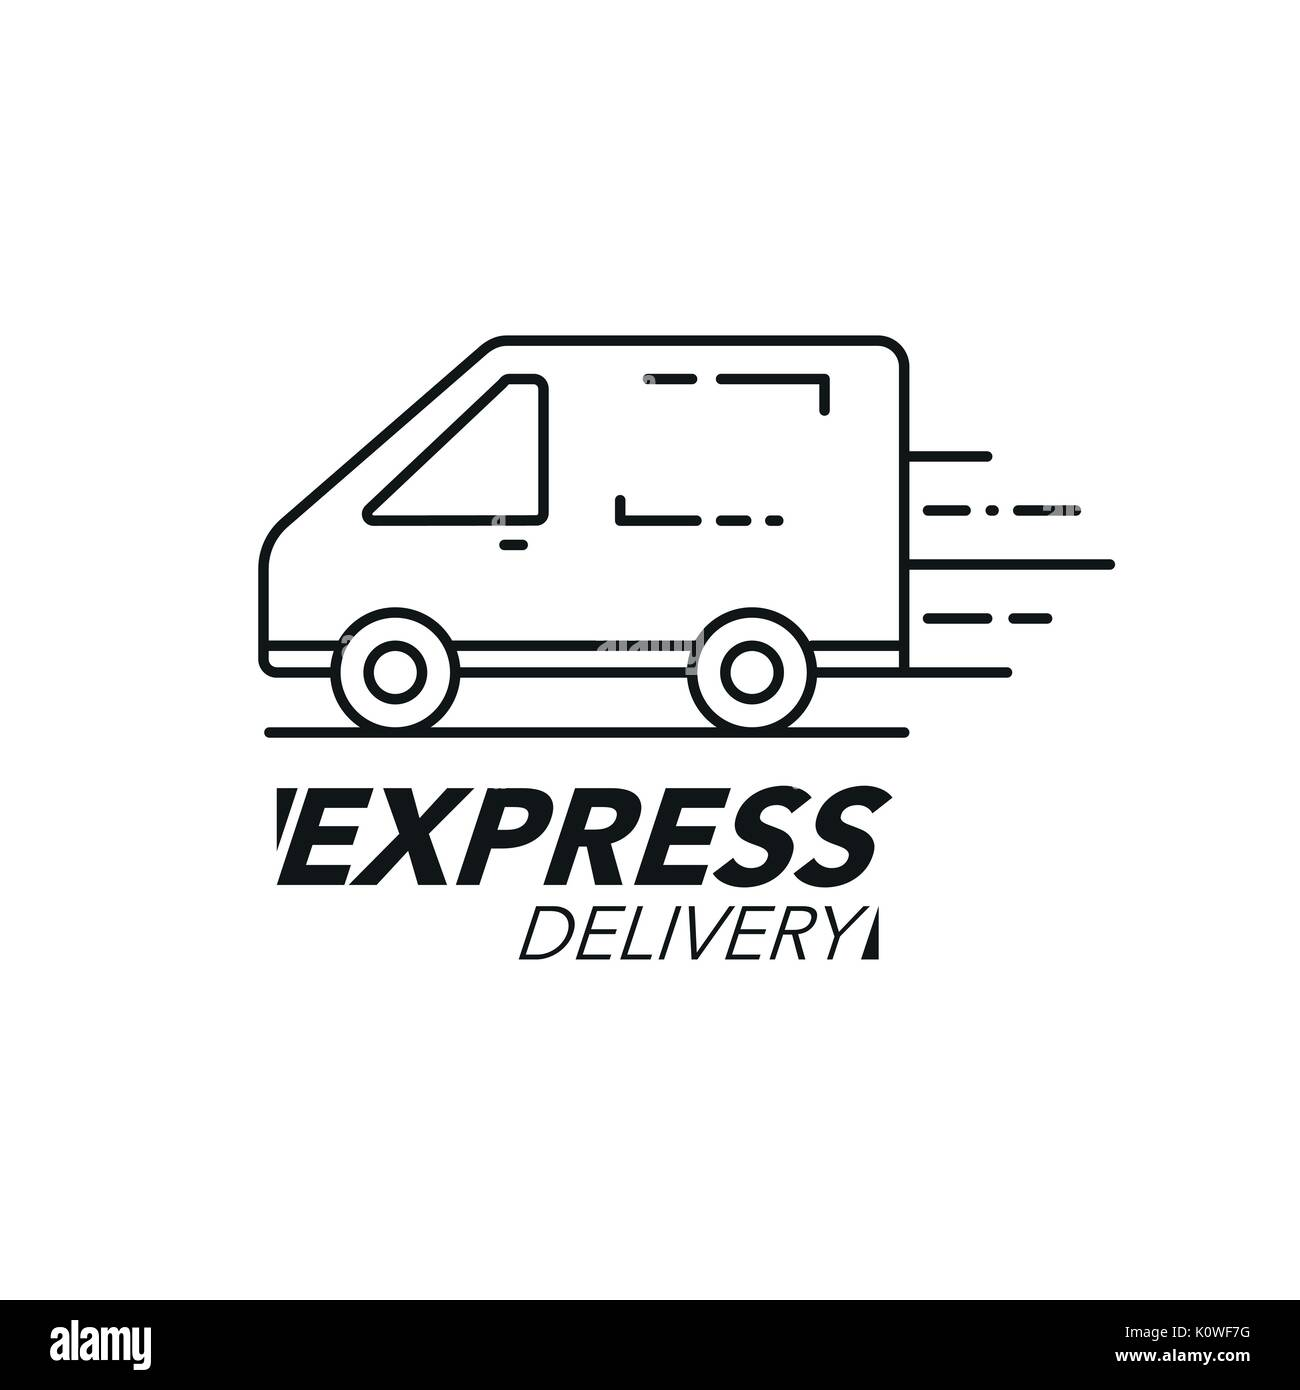 Concept Van Stock Photos Images Alamy White Ford Cargo Clip Art Express Delivery Icon Service Order Worldwide Shipping Modern Design Vector